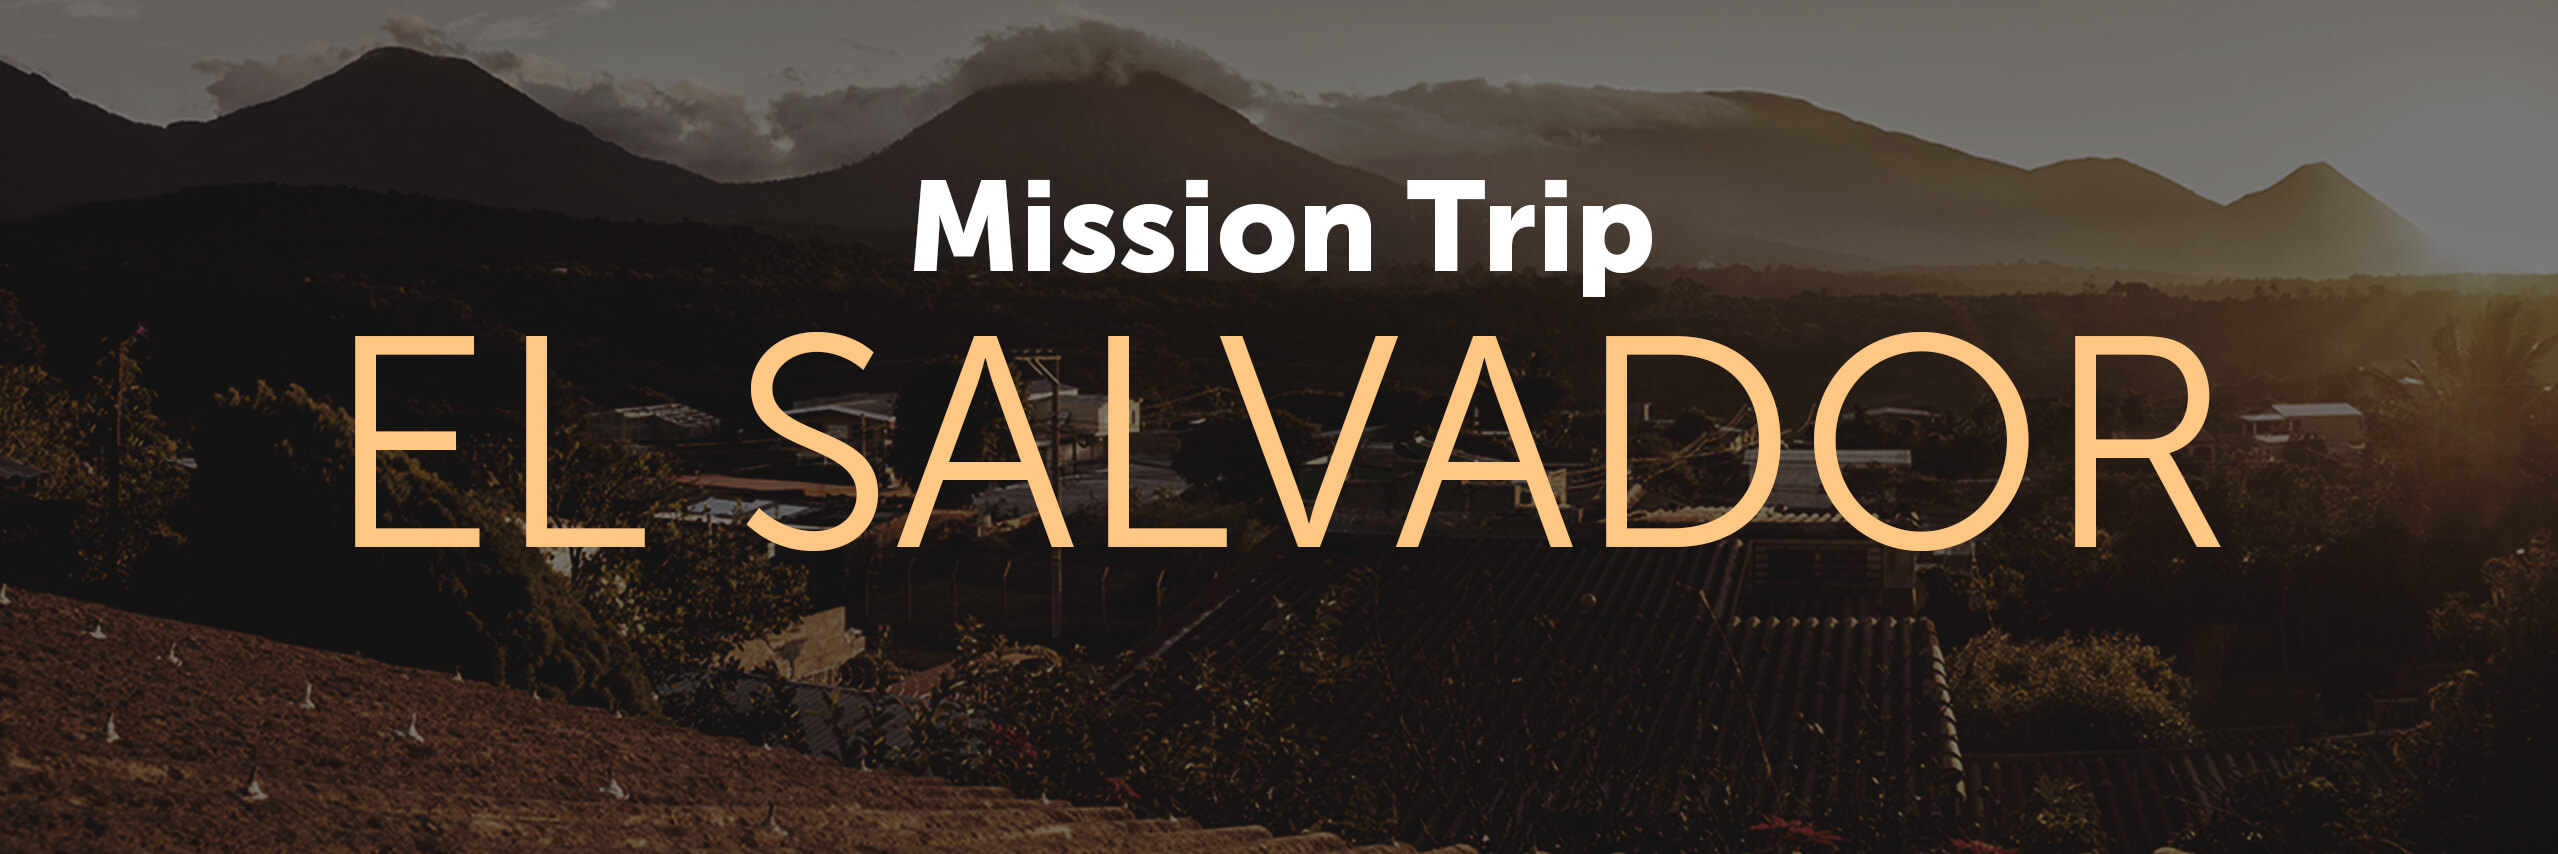 Mission Trip El Salvador